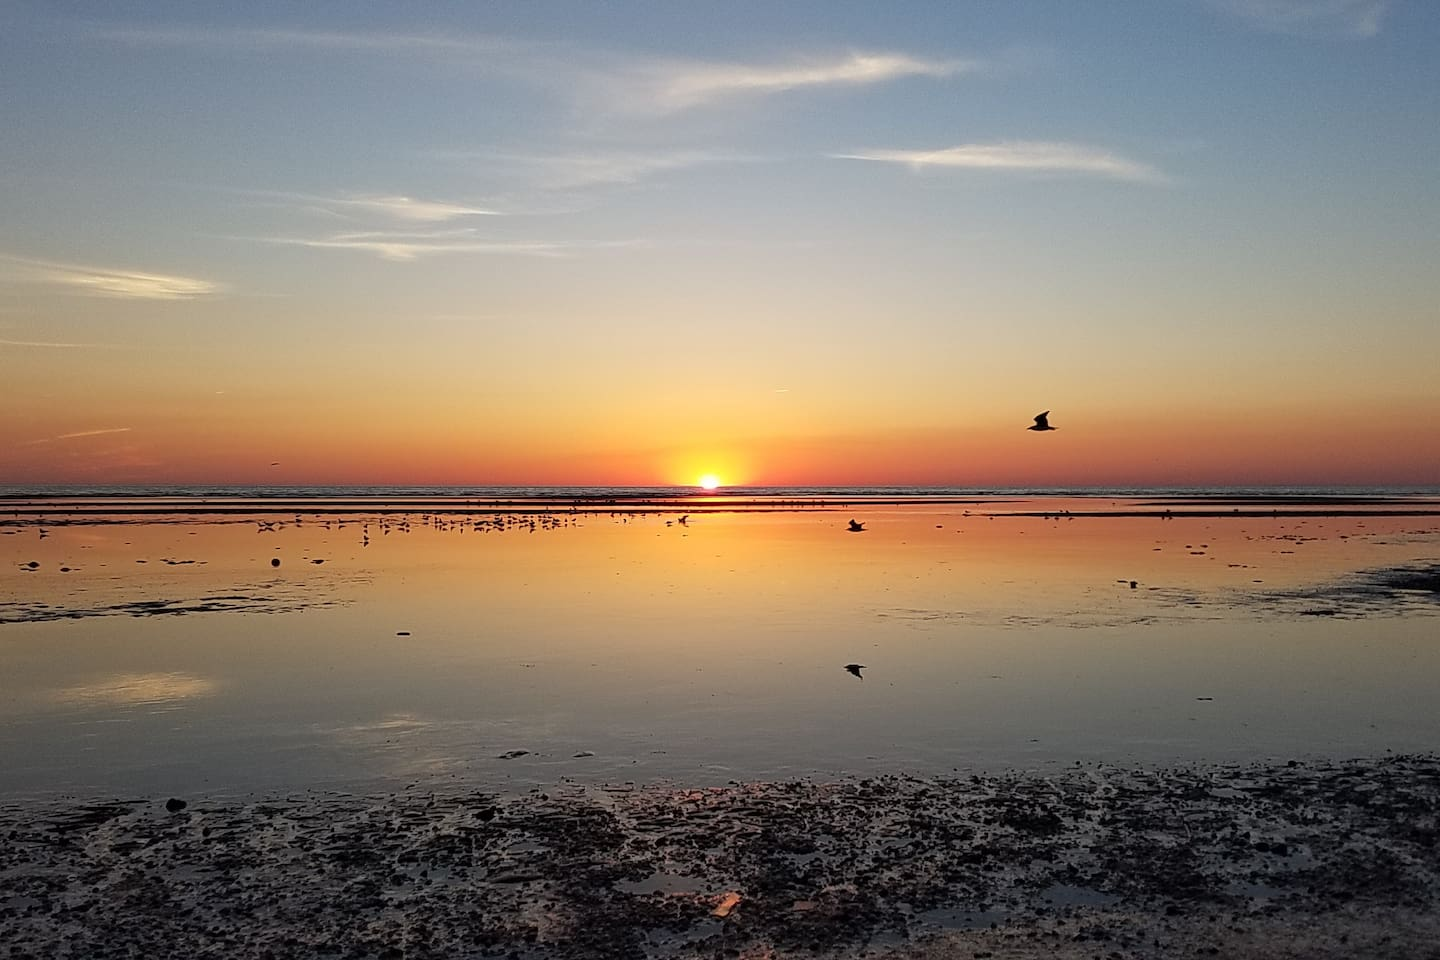 Most beautiful sunsets not to miss!